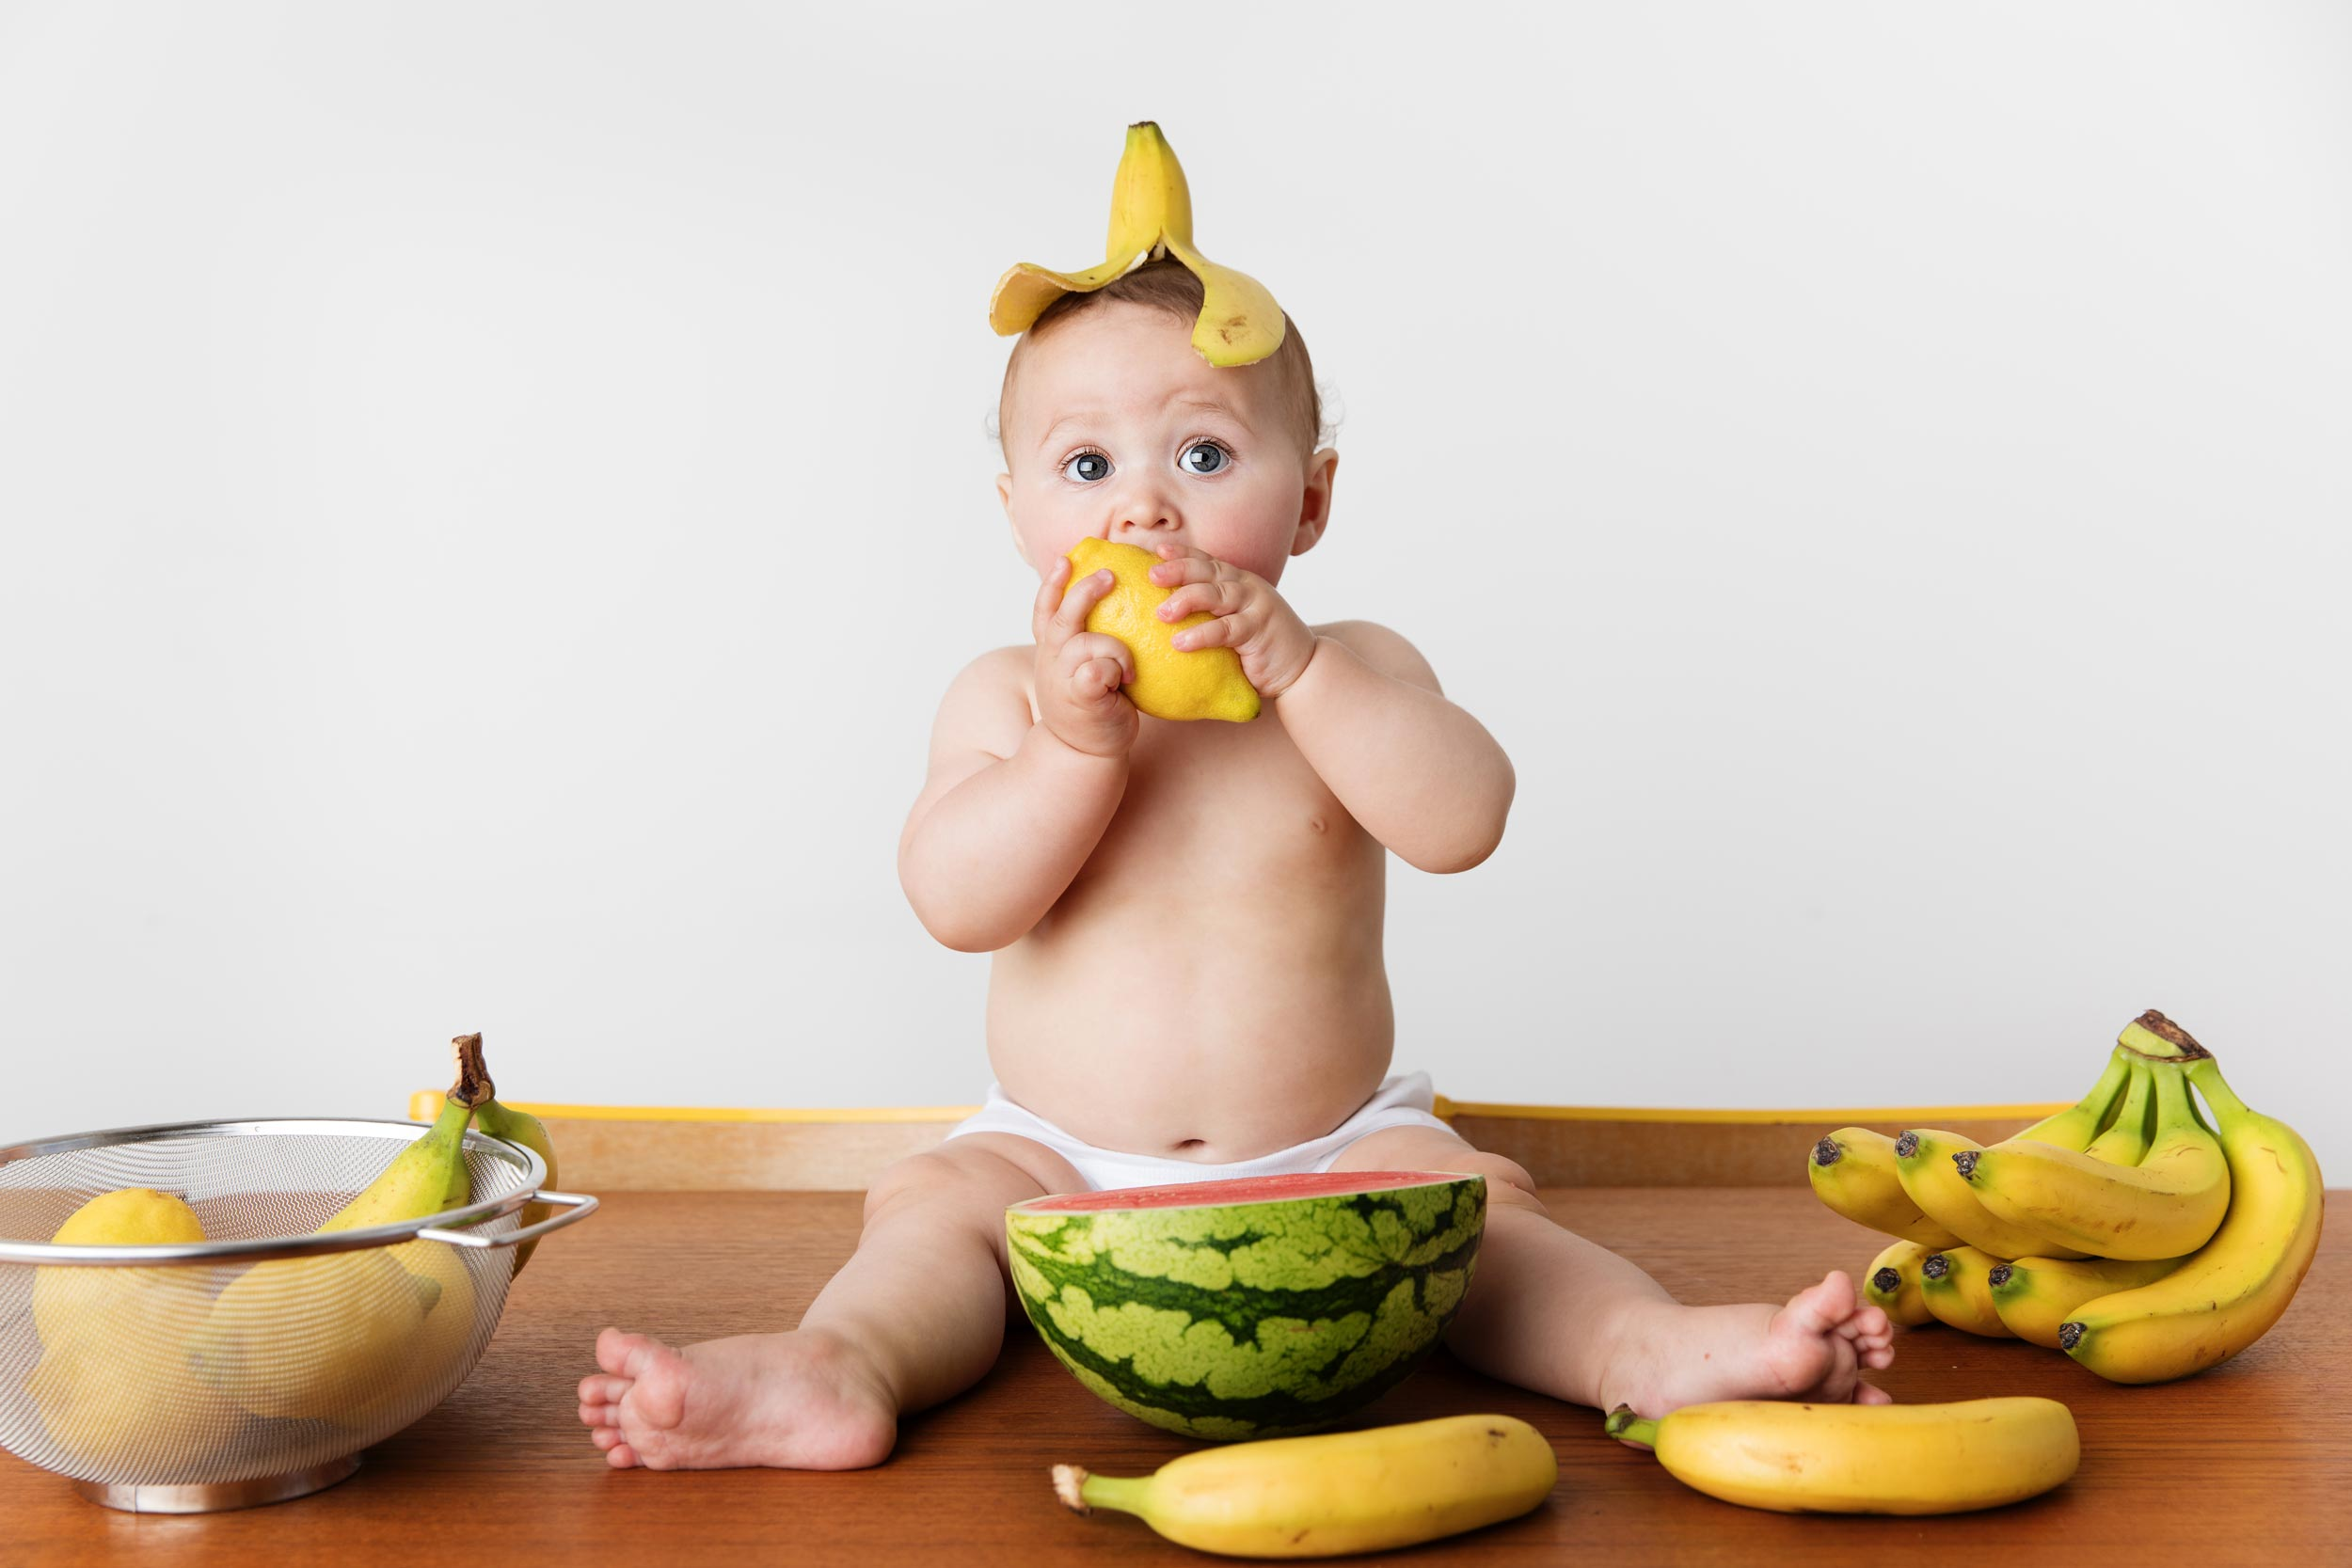 38-Commercial-baby-lifestyle-photography-Lisa-Tichane